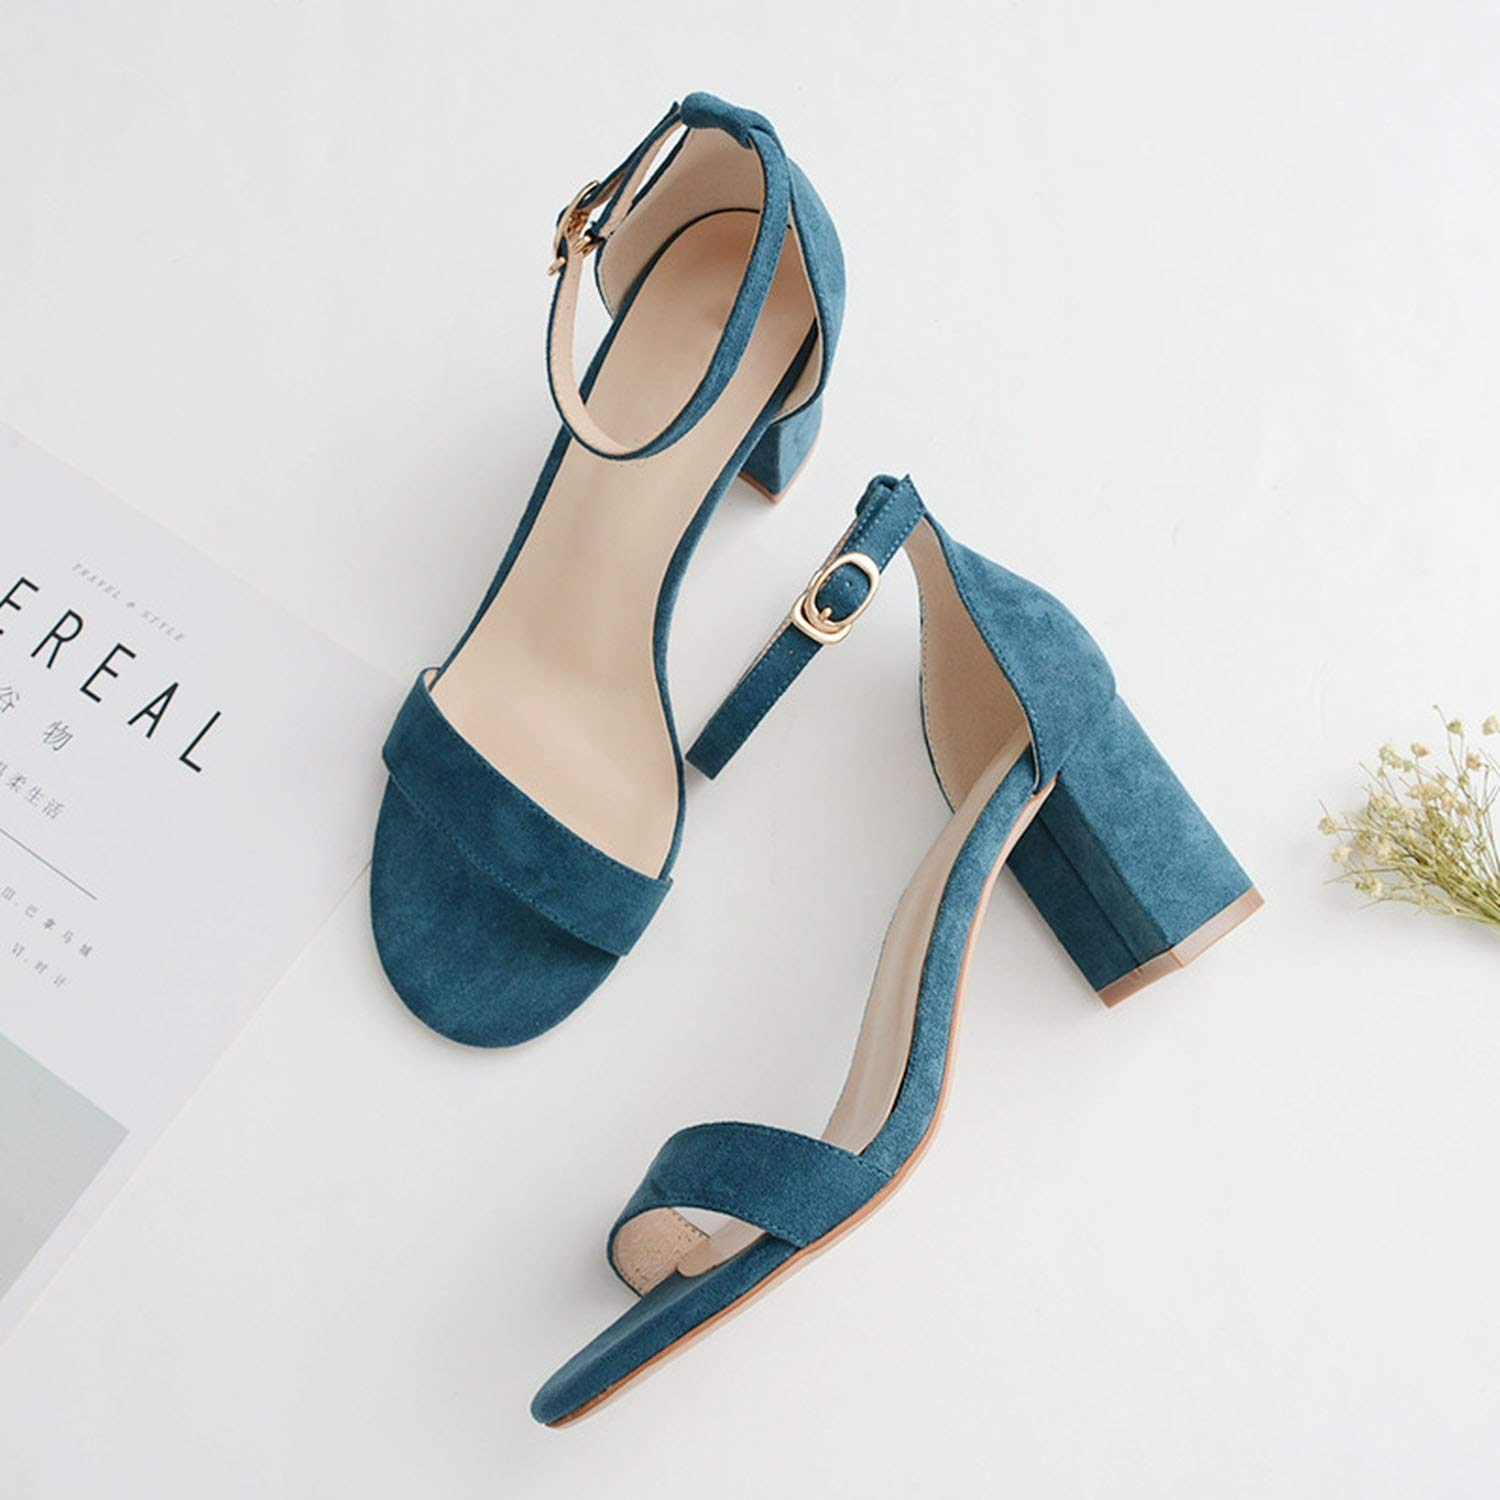 Sweet Studio Concise New Women Shoes Buckle Flock Leather Heel Sandals Square Heel high Heels Shoes Big Size 34-40 m921